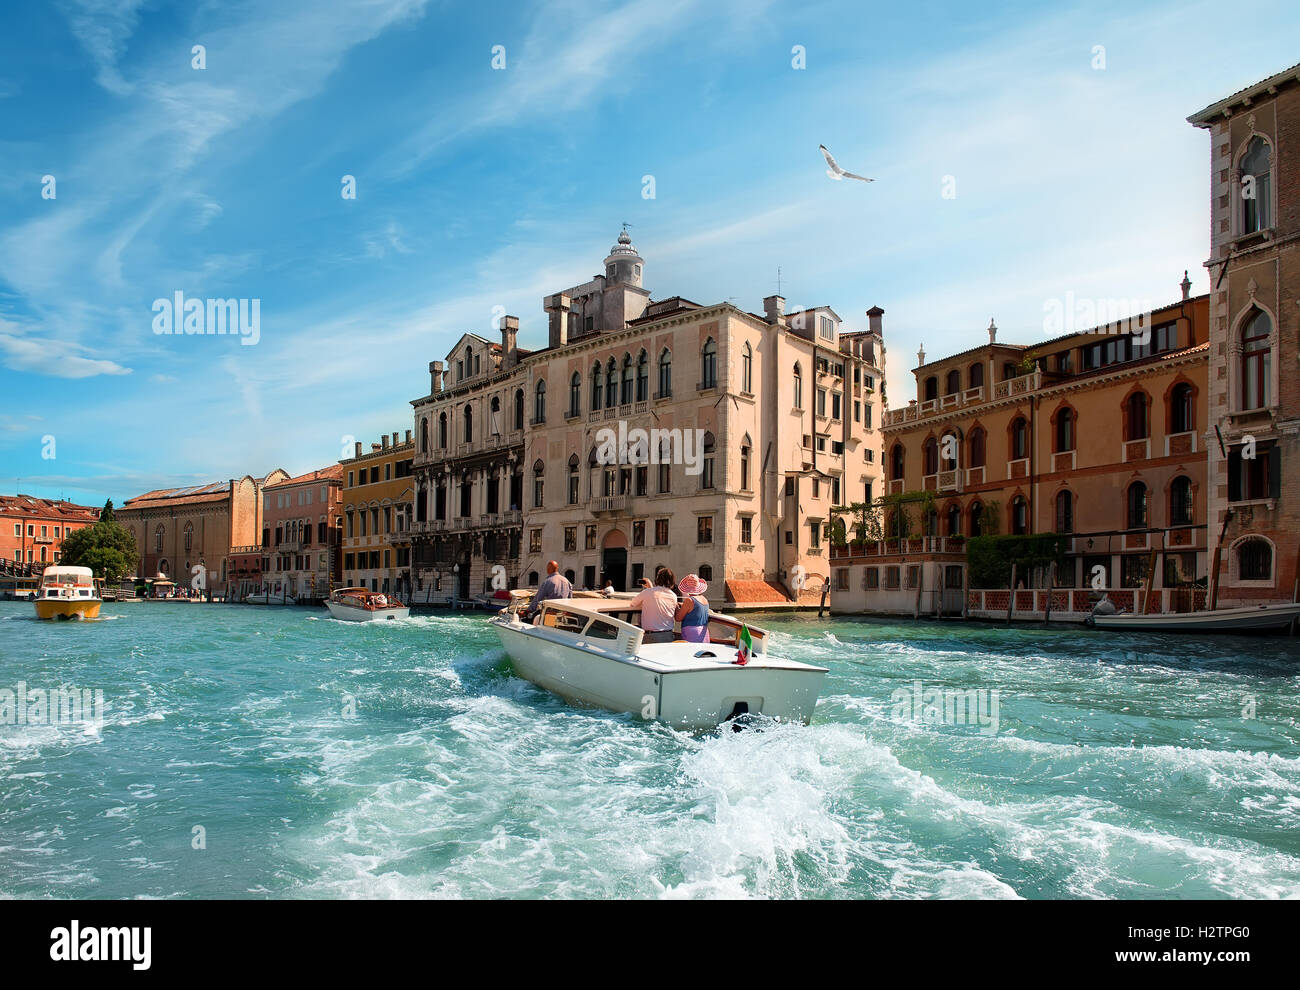 Warm summer day in romantic Venice, Italy. View from the bridge of Academia - Stock Image